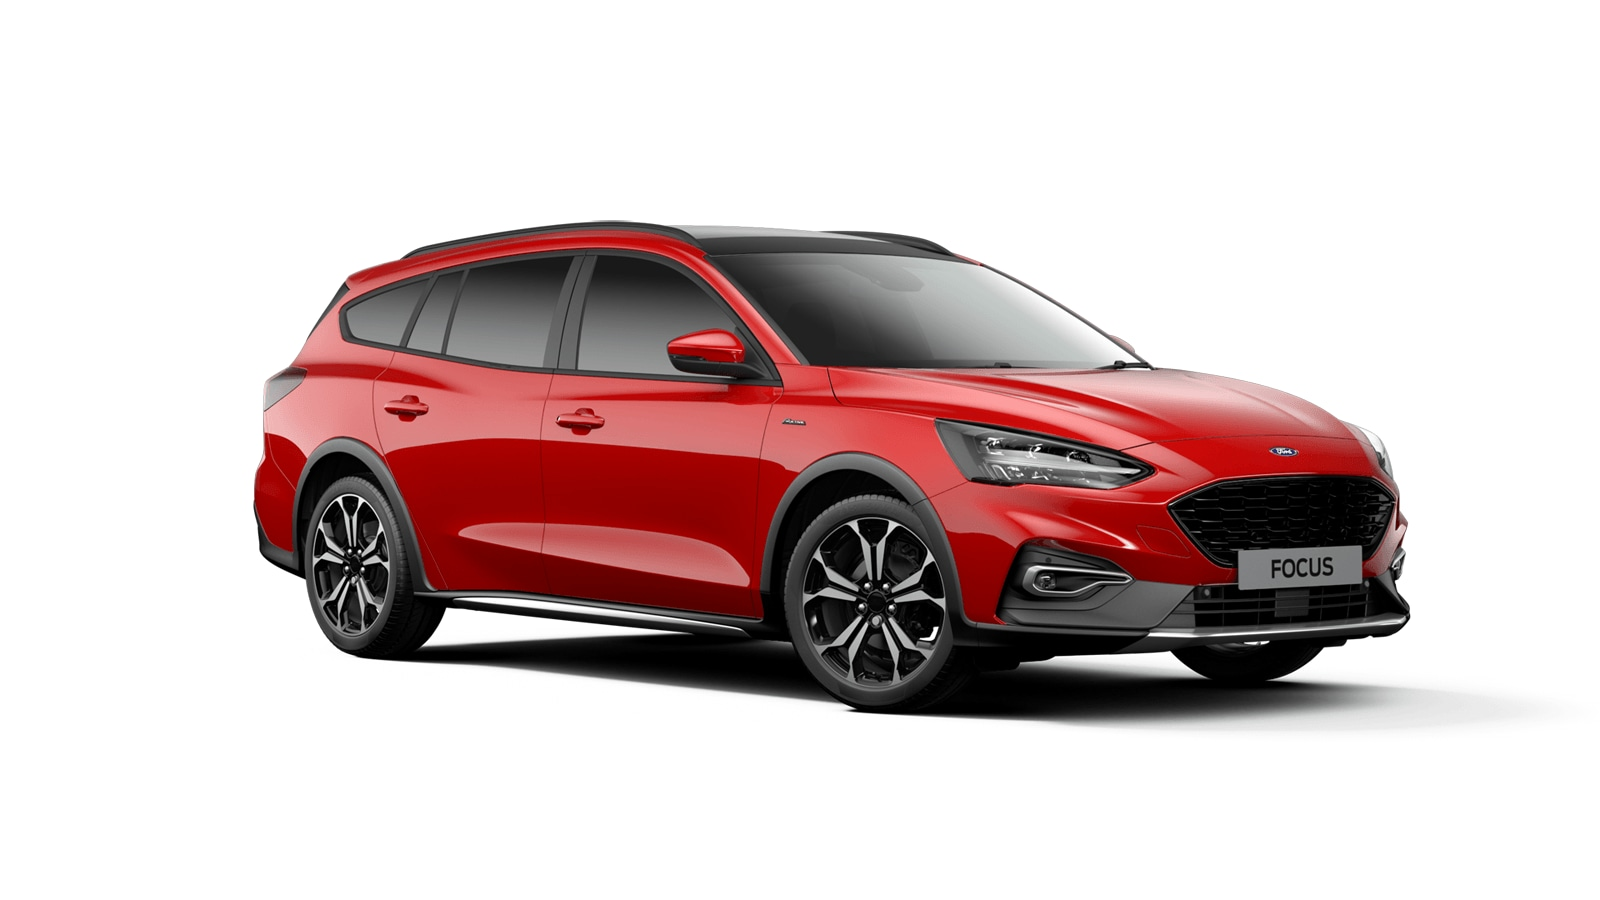 New Ford Focus EcoBoost Mild Hybrid Active X Edition mHEV